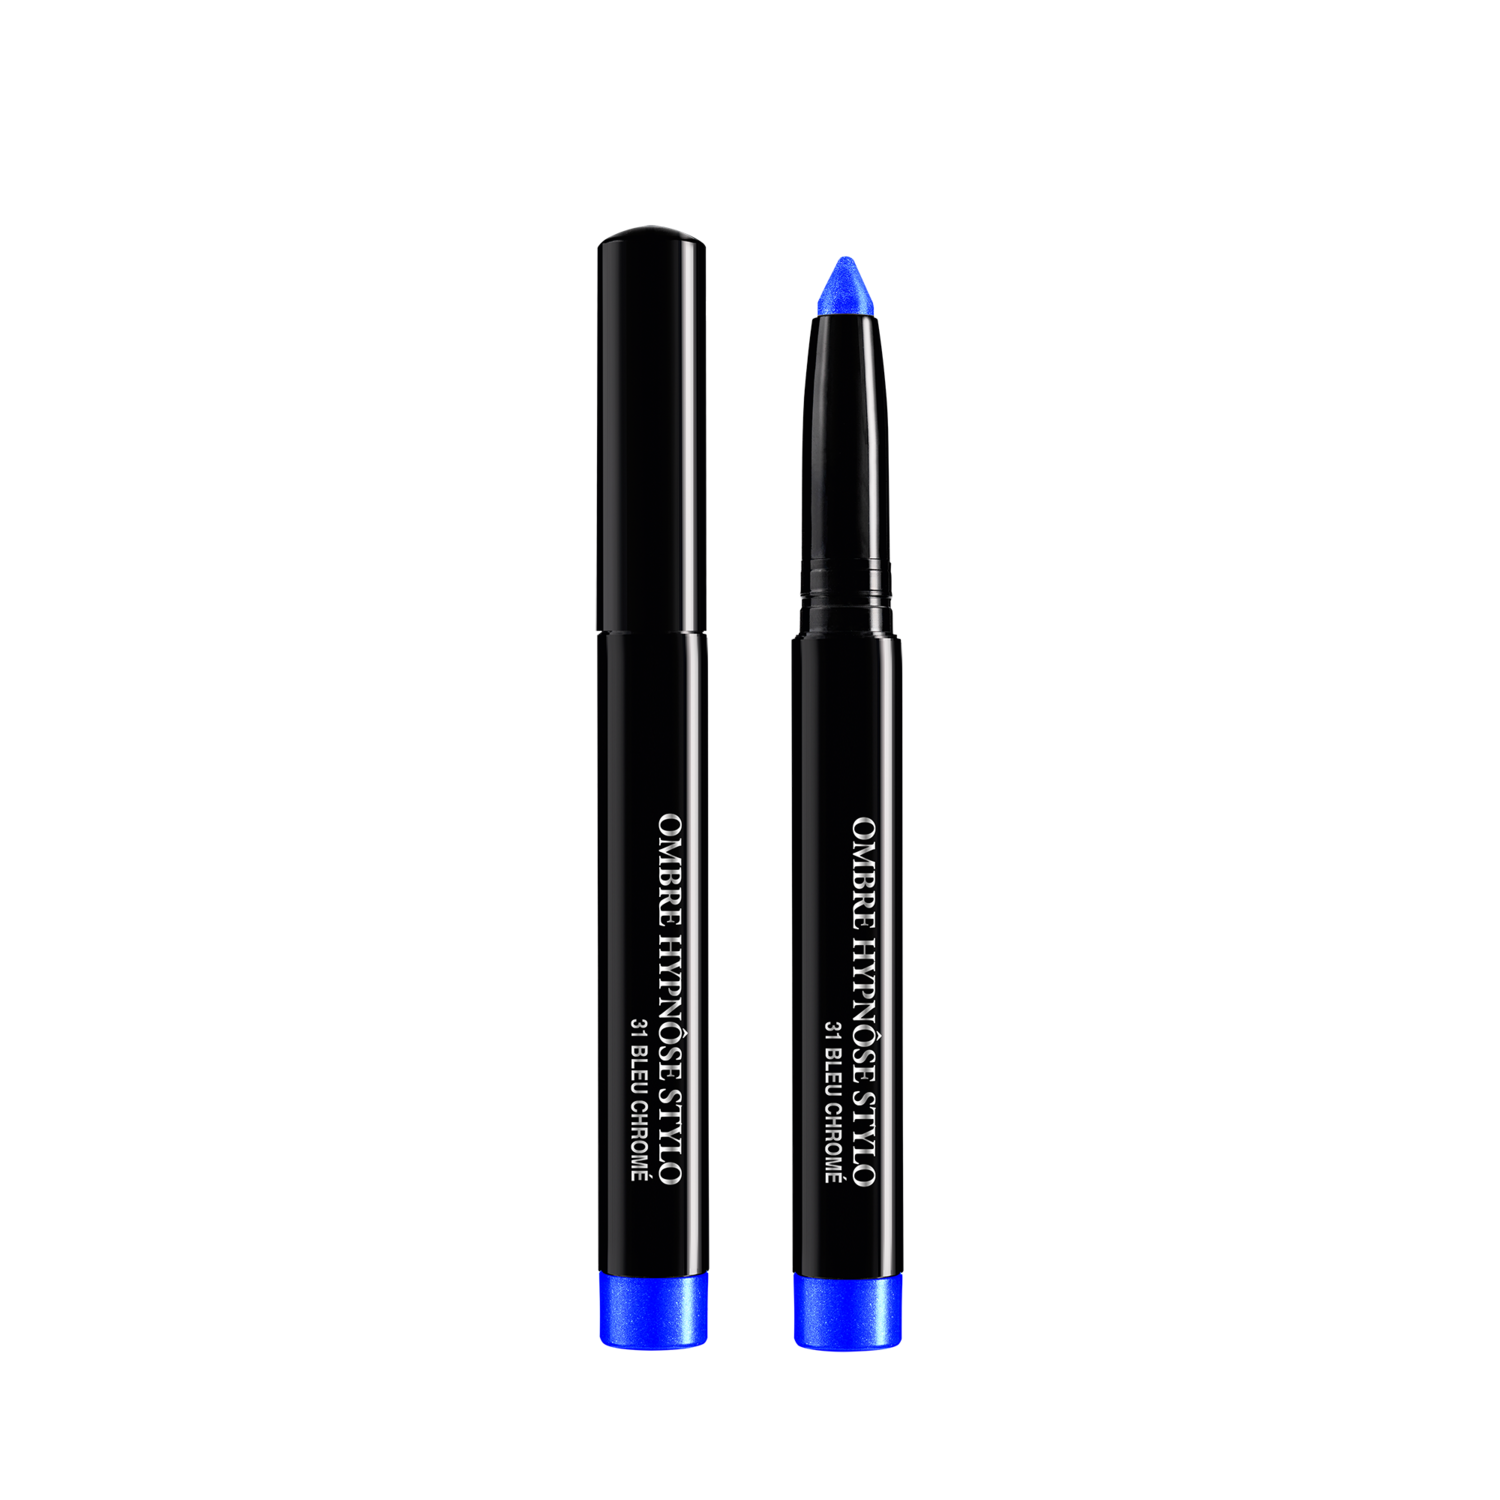 OMBRE HYPNOSE STYLO EYE SHADOW STICK 31